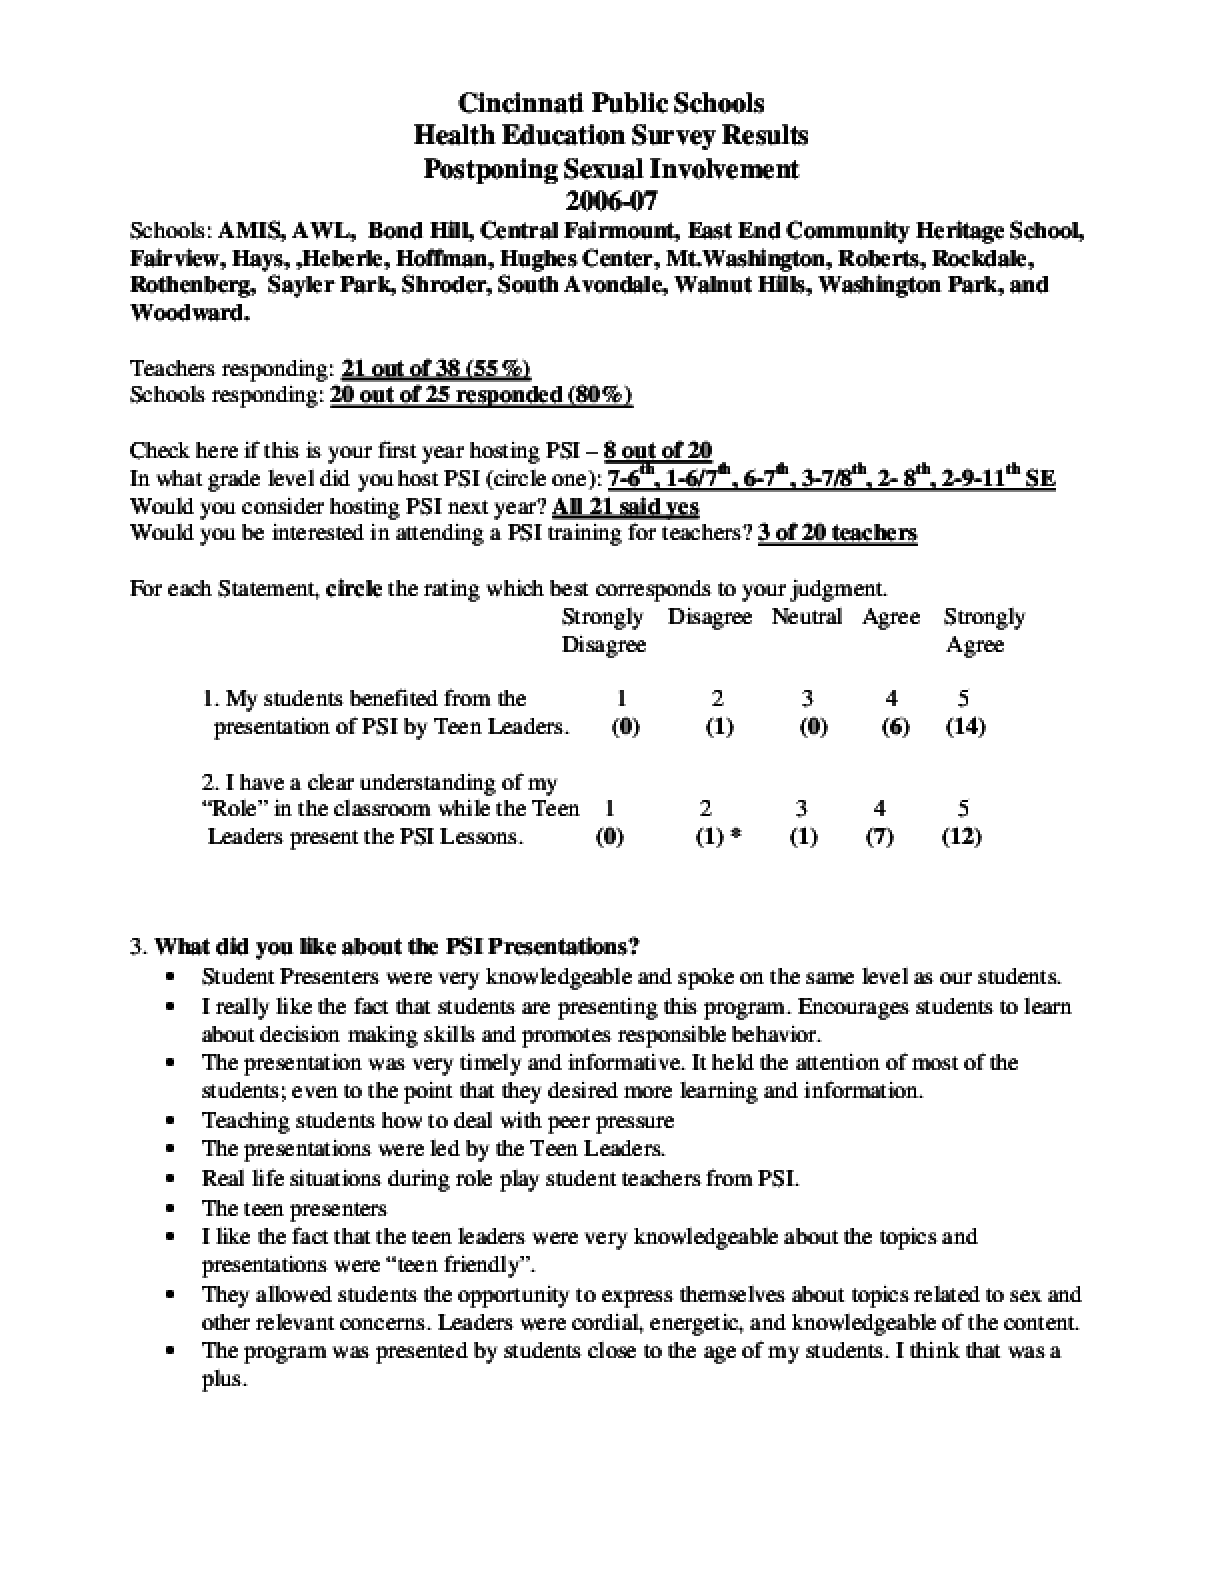 Postponing Sexual Involvement Teacher Survey Results 2006-07